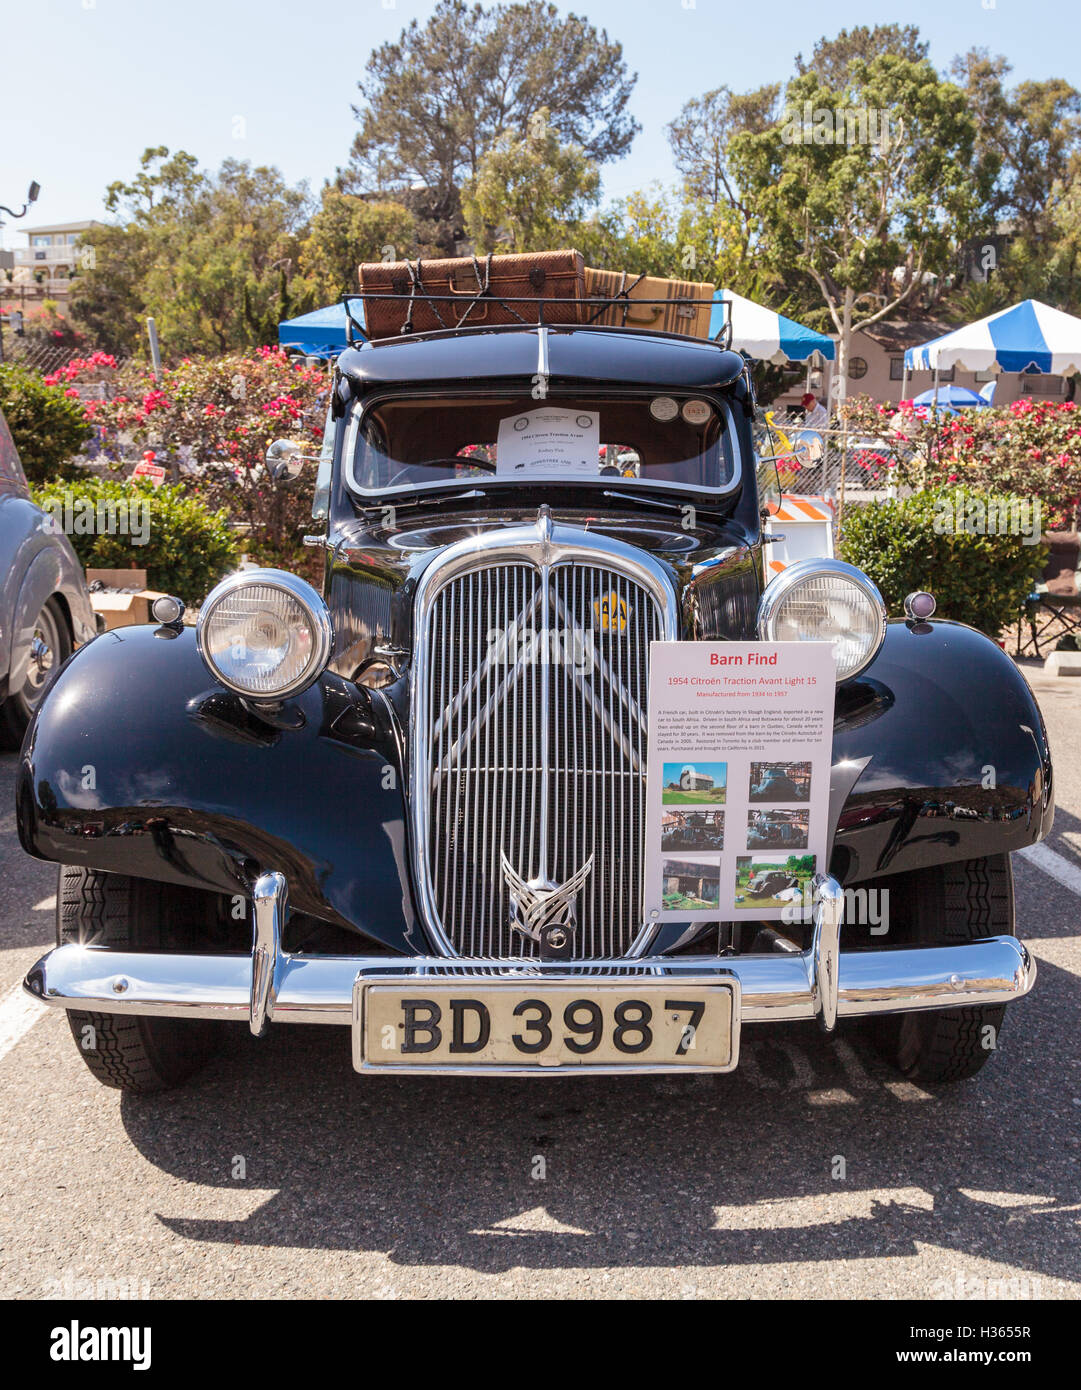 This Black 1954 Citroen Traction Avant Was Driven In South Africa And Botswana For 20 Years